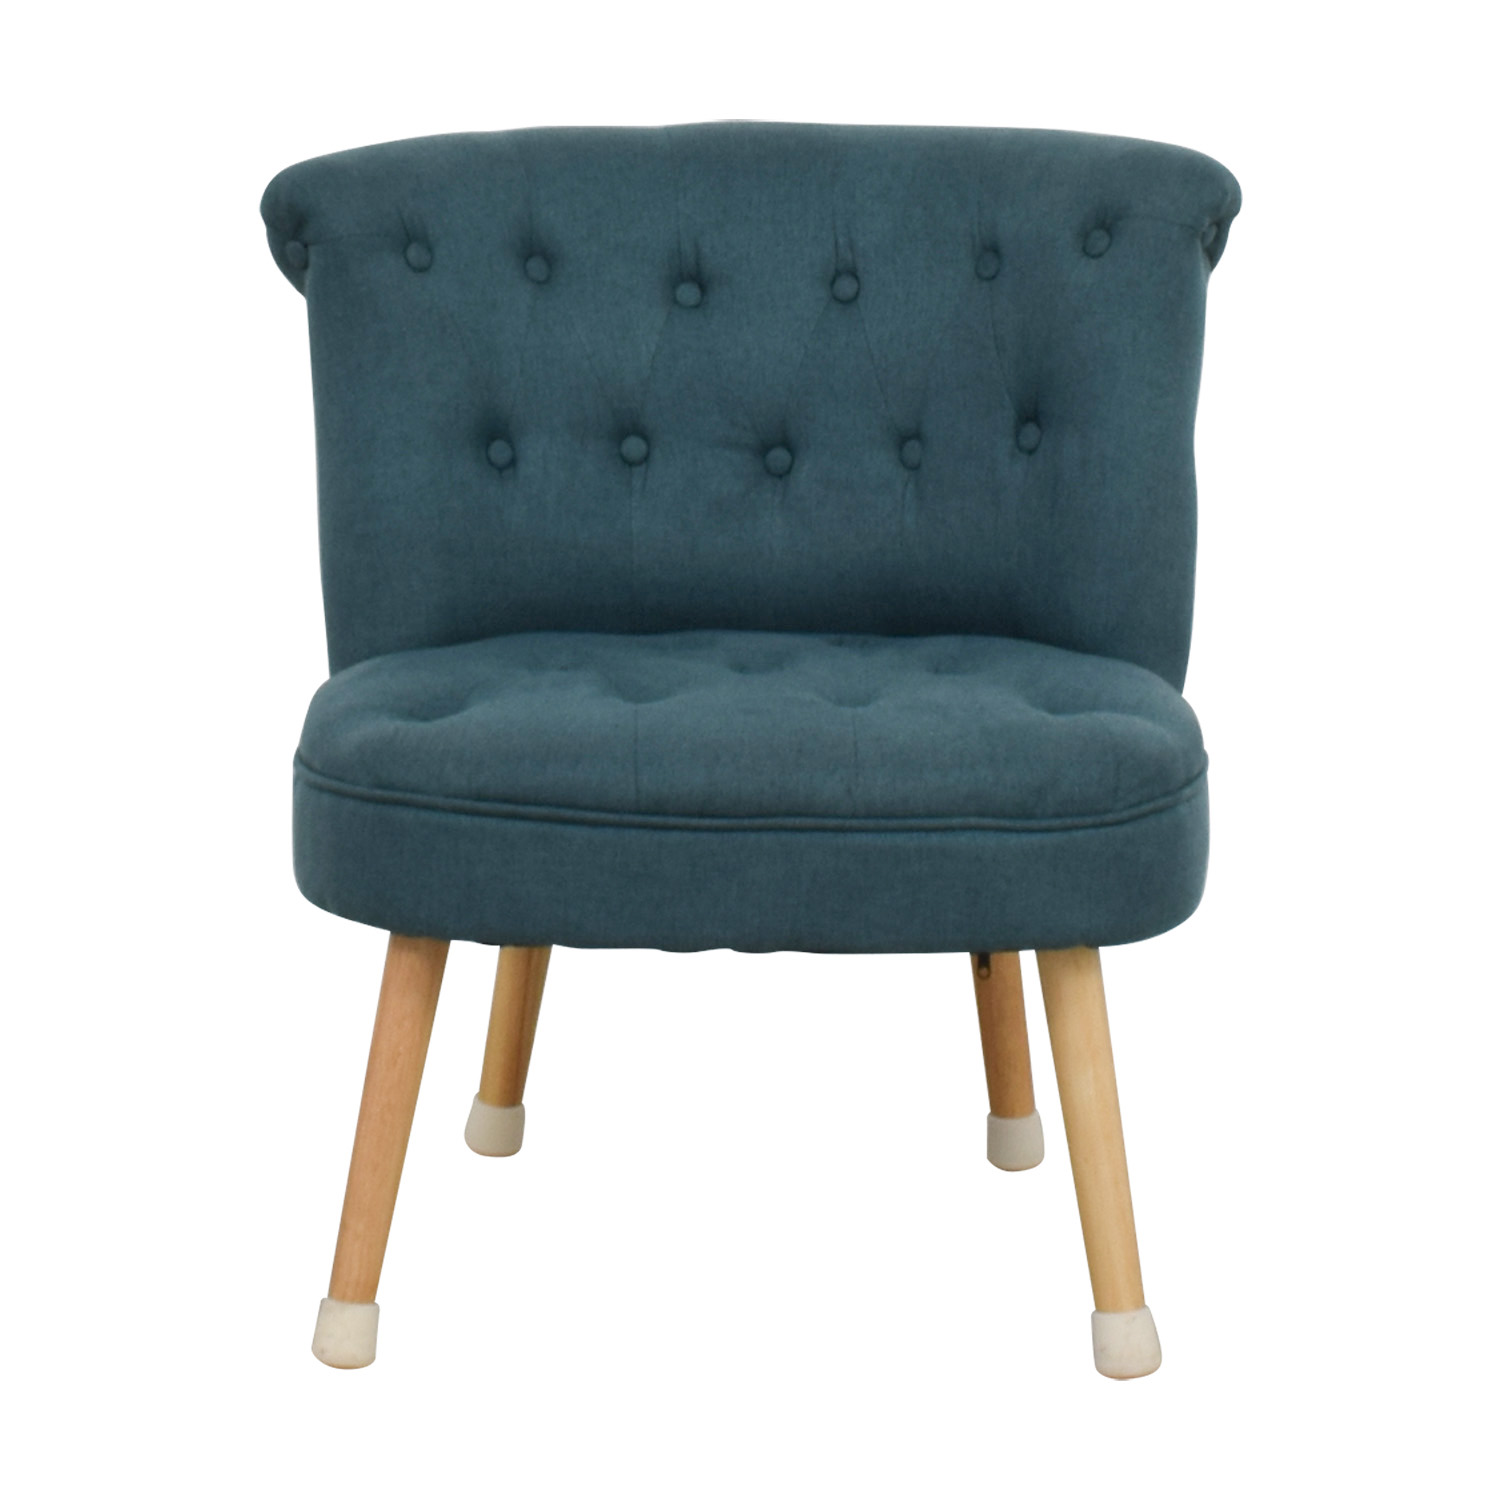 Christopher Knight Mid Century Green Tufted Accent Chairs / Accent Chairs  ...